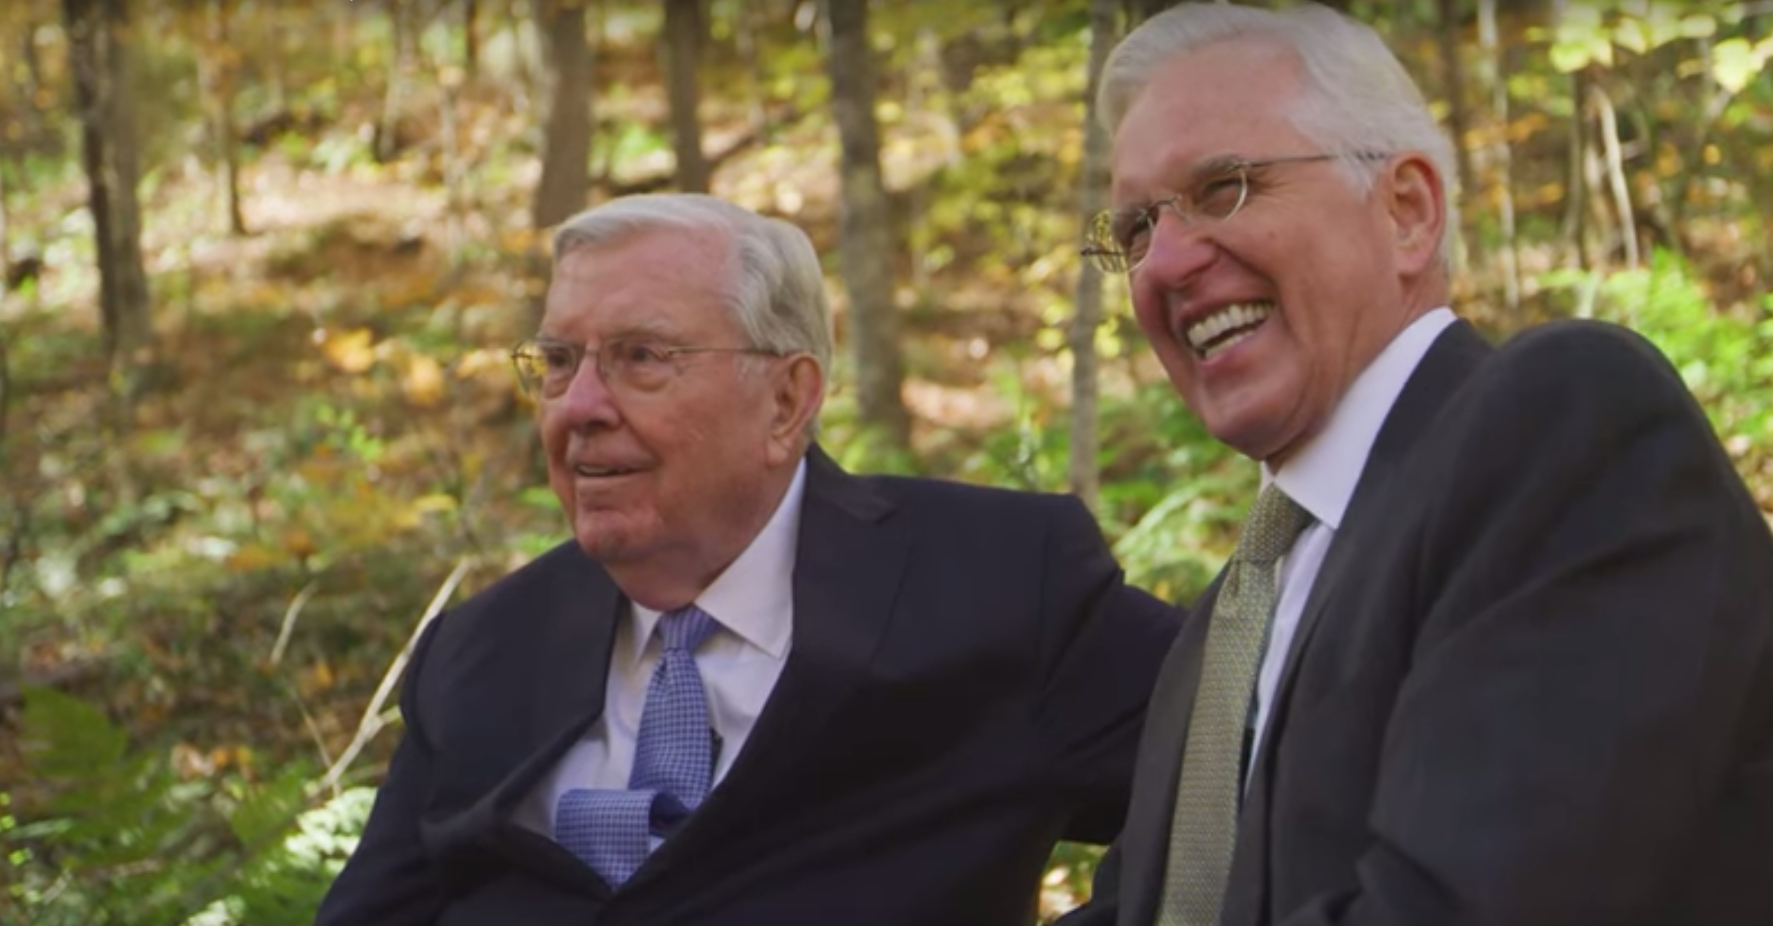 President M. Russell Ballard, left, and Elder D. Todd Christofferson, right, at the birthplace of Joseph Smith in Sharon, Vermont.